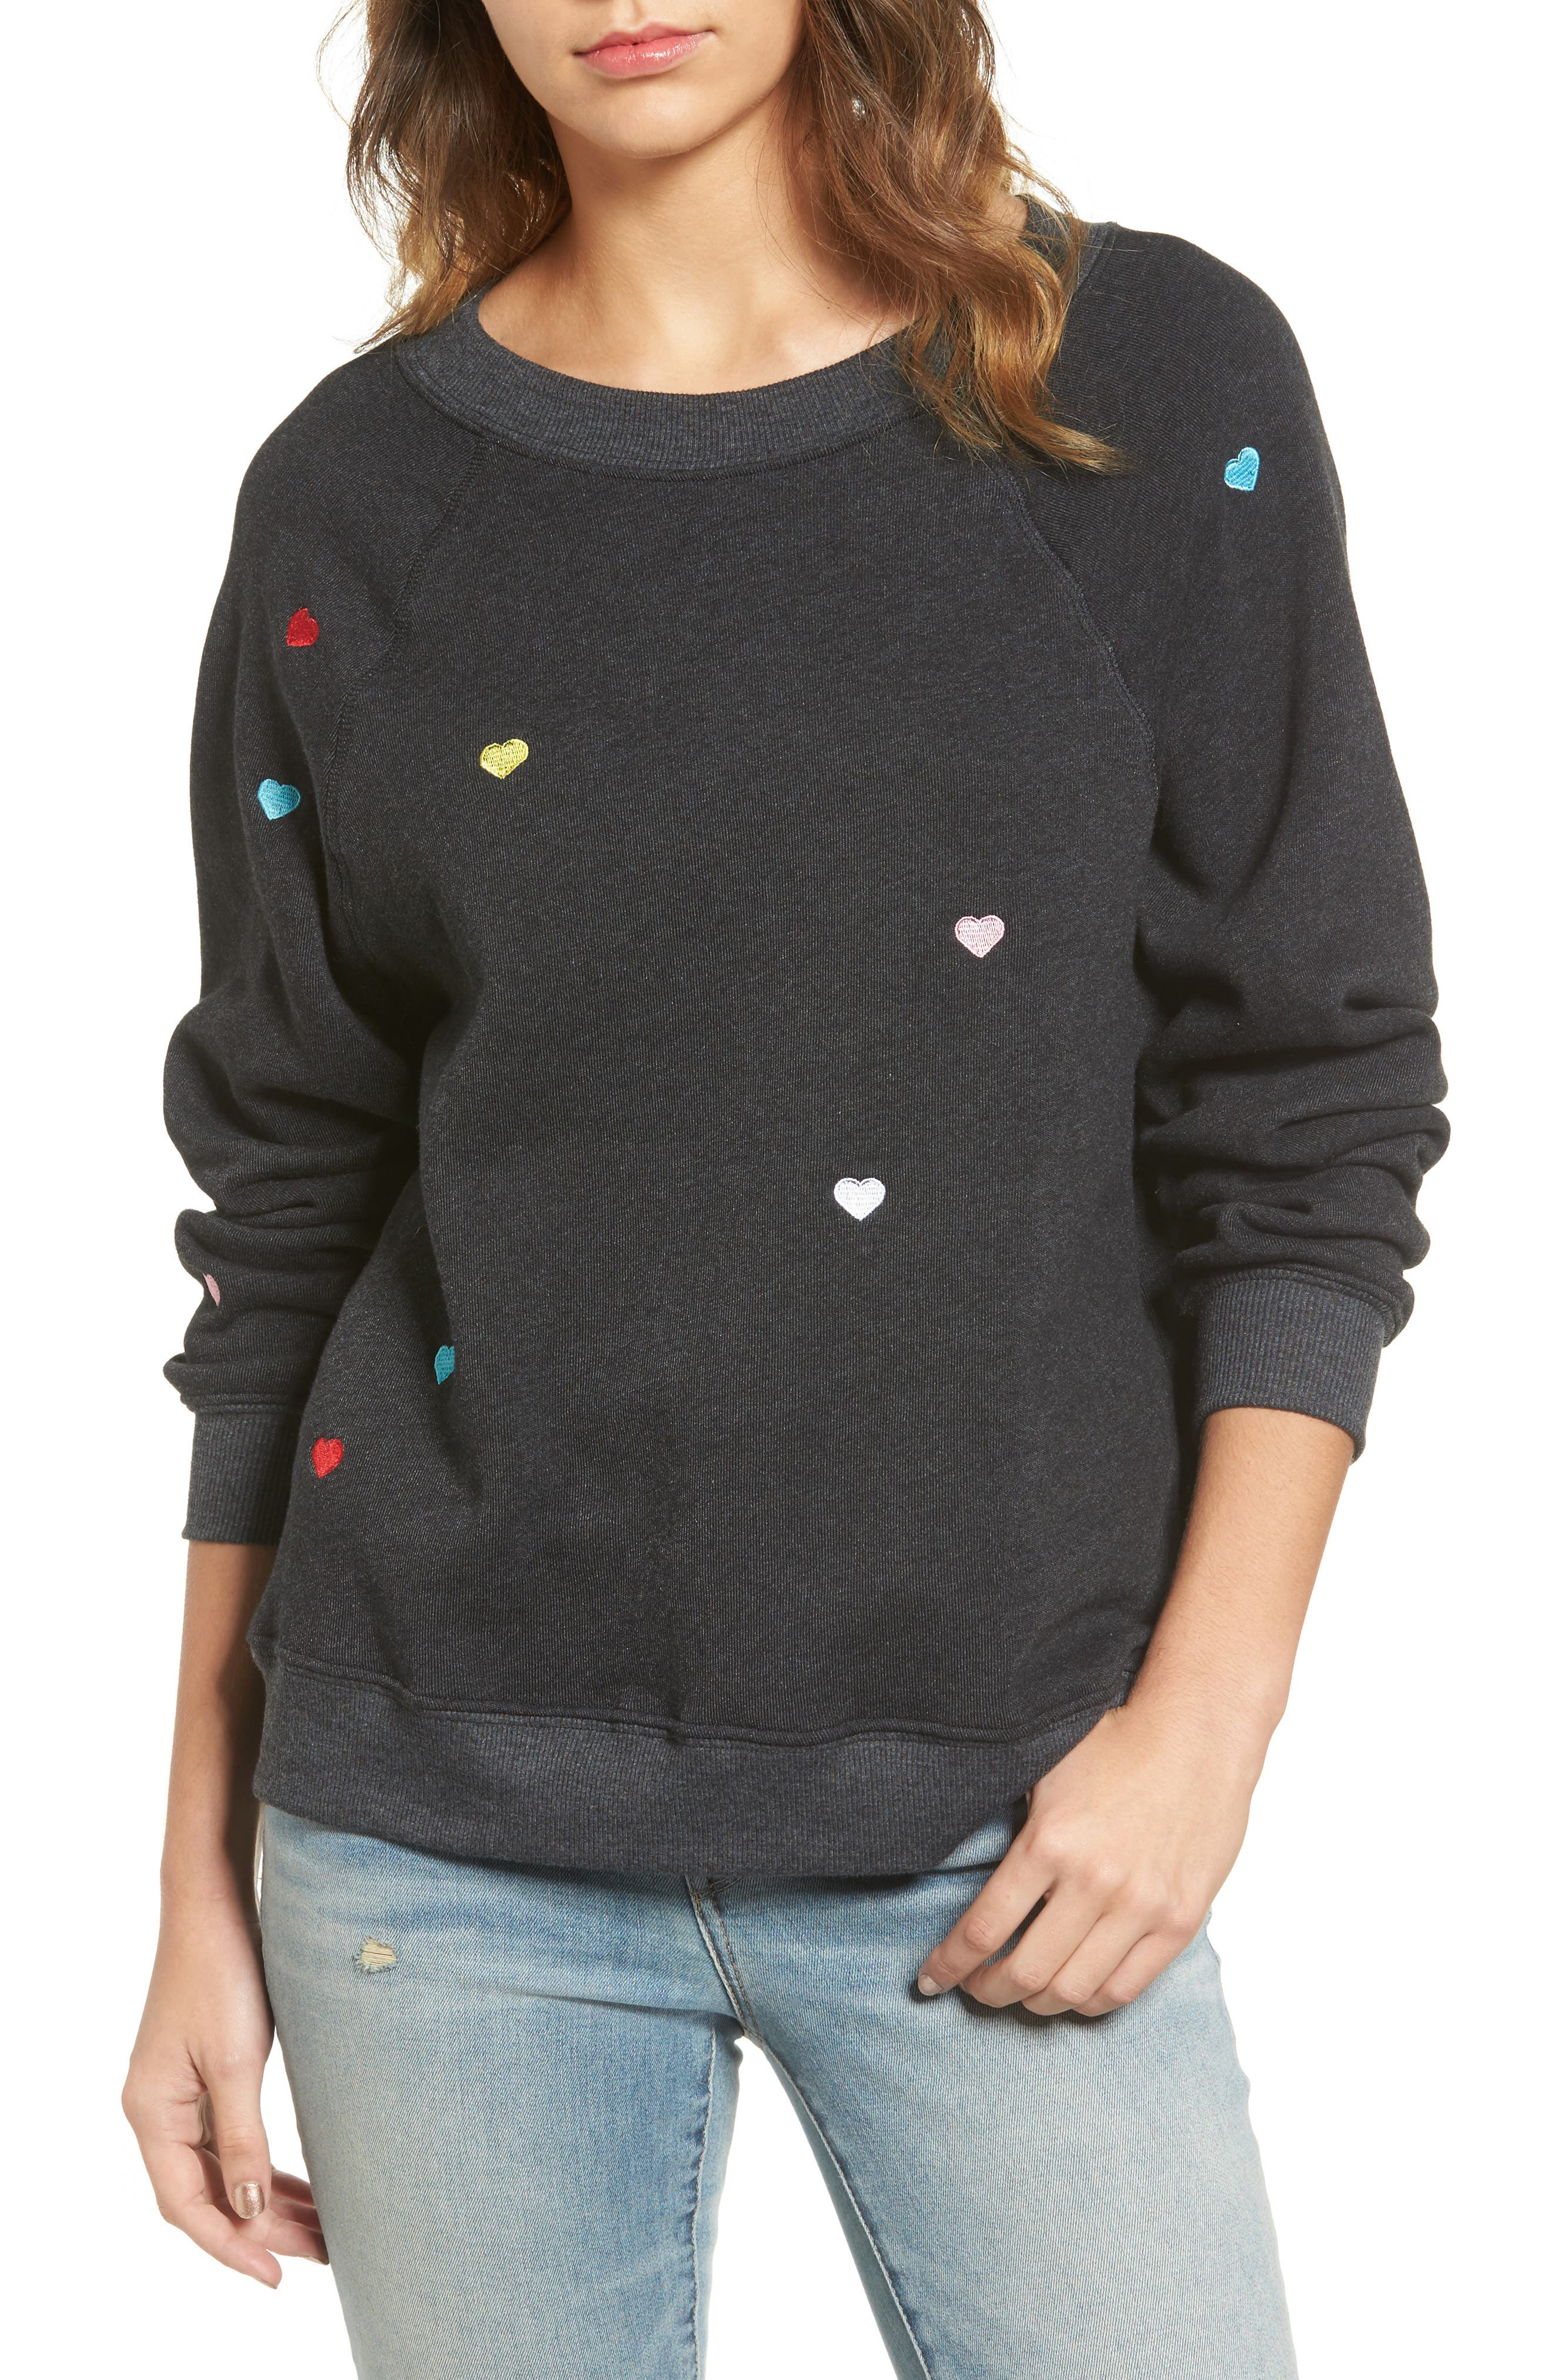 Main Image - Wildfox Sommers Sweater - Heart Embroidered Pullover